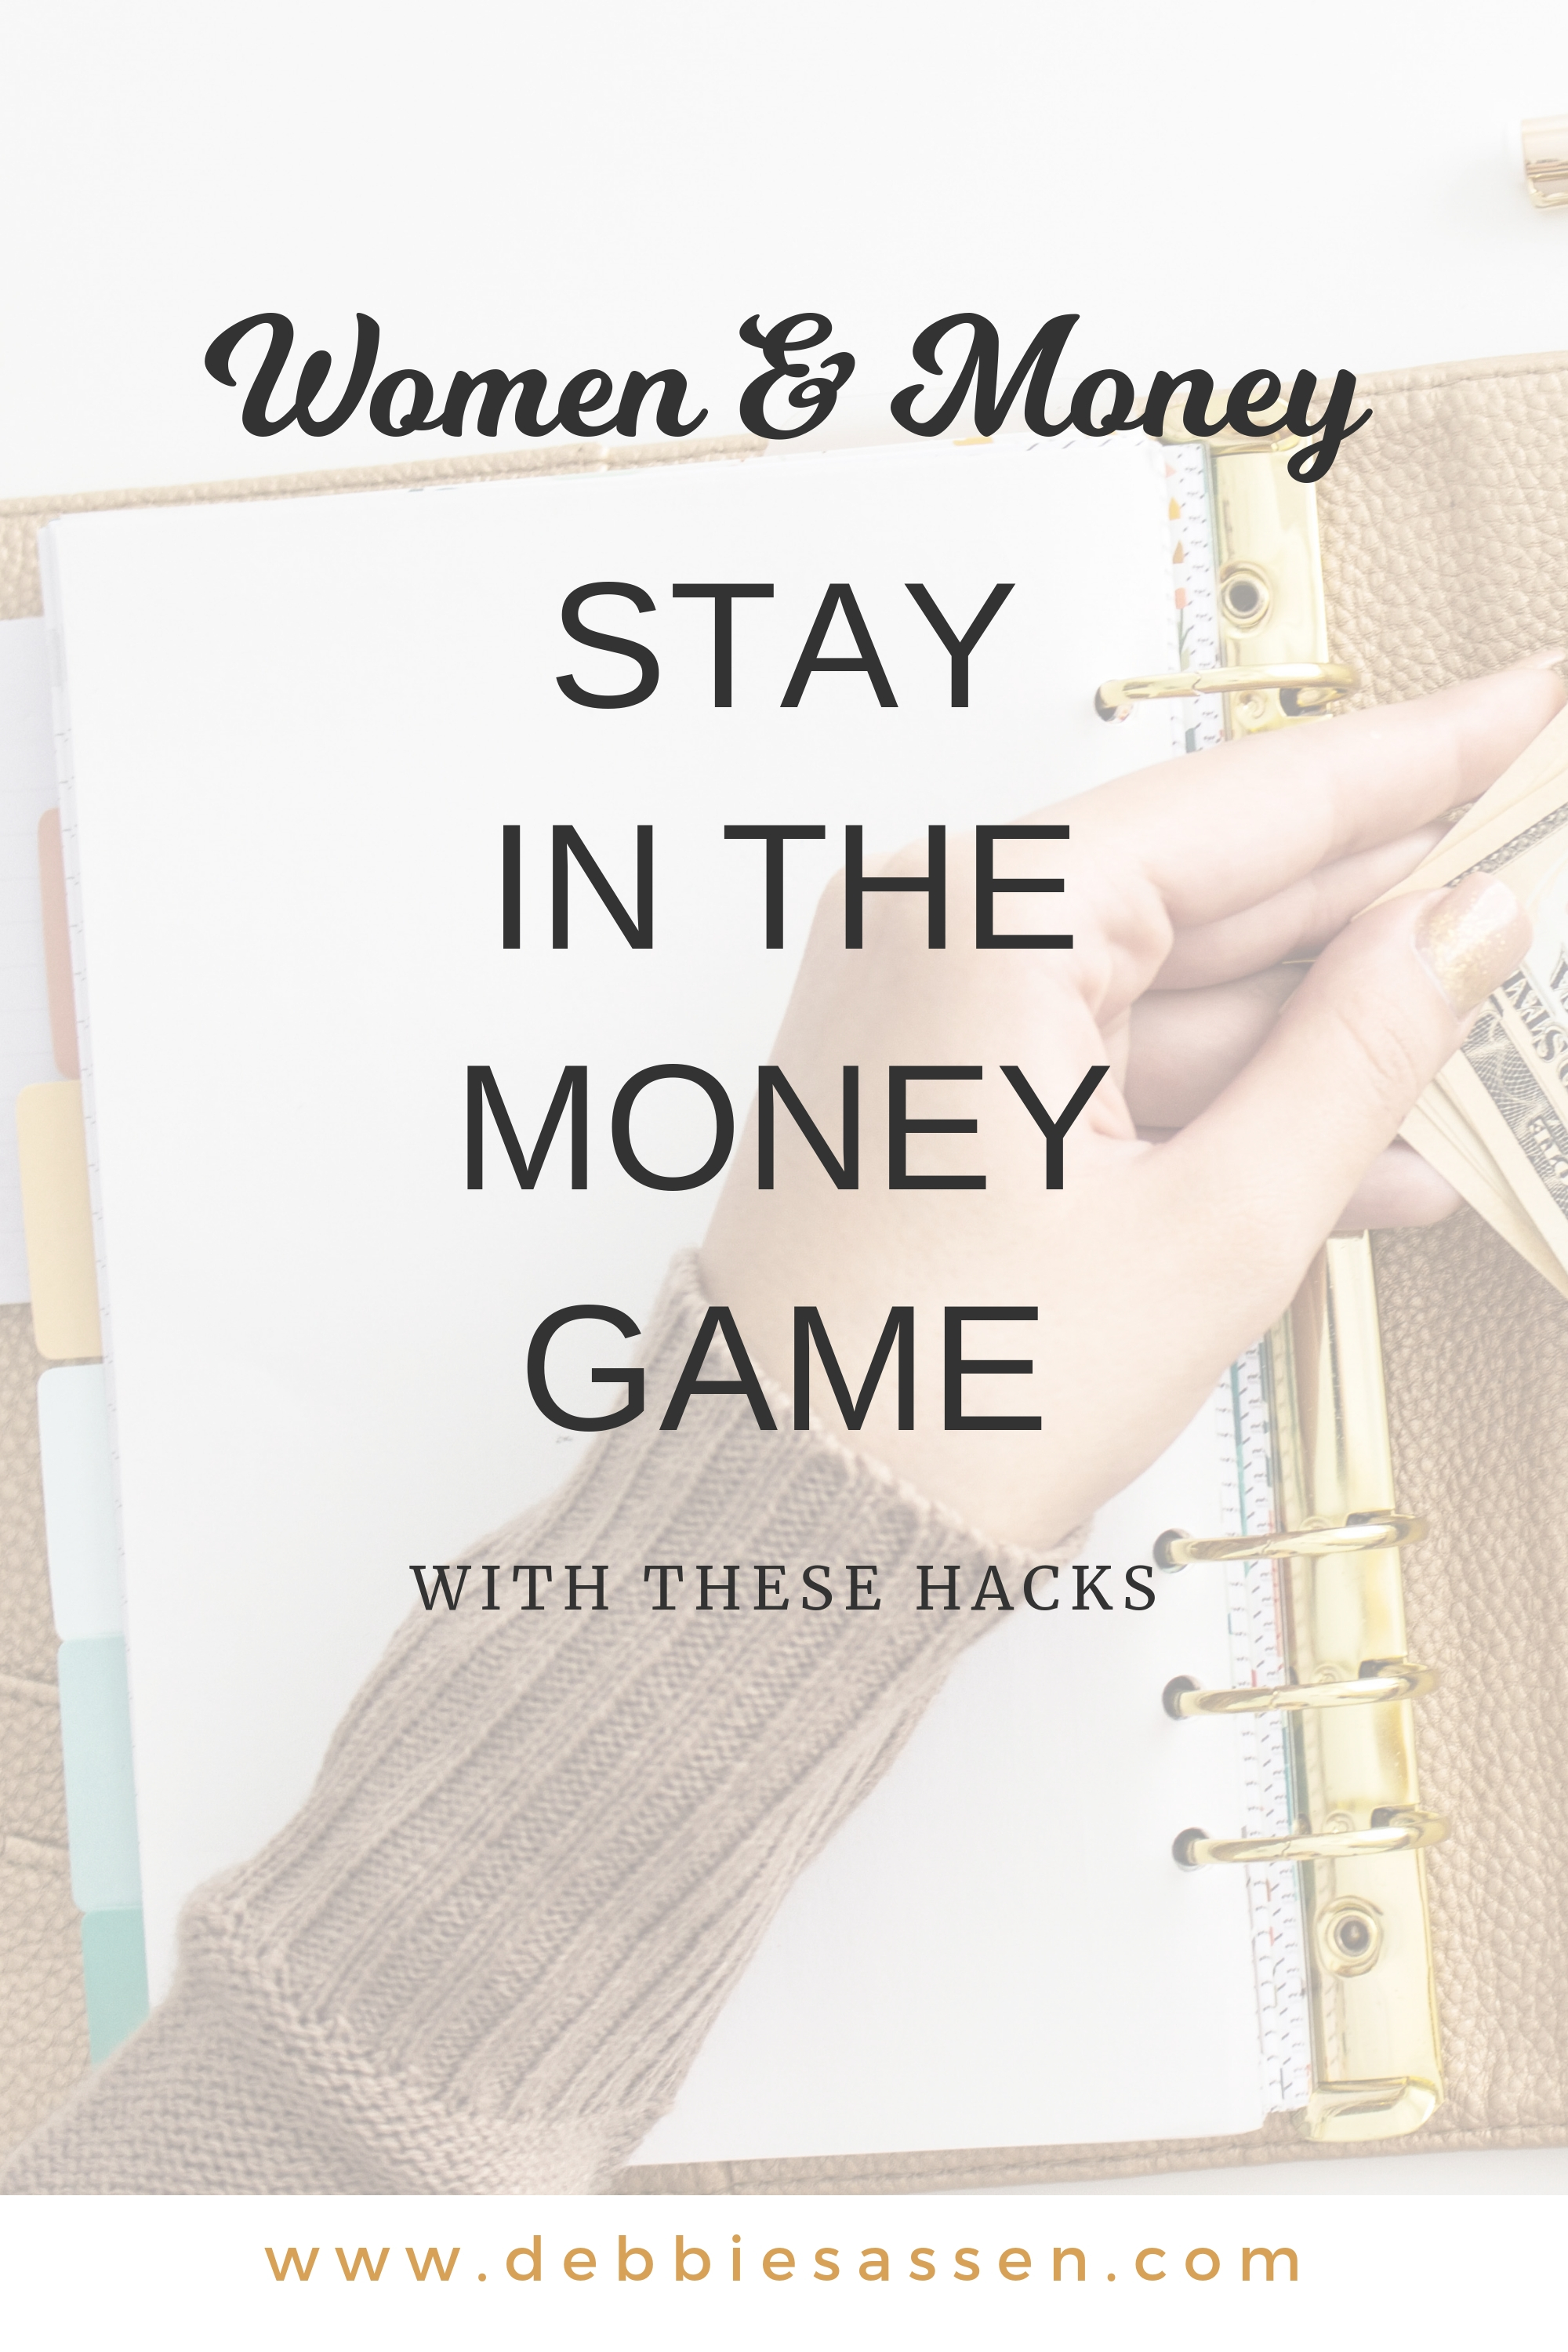 Stay in the money game using these two hacks | Debbie Sassen